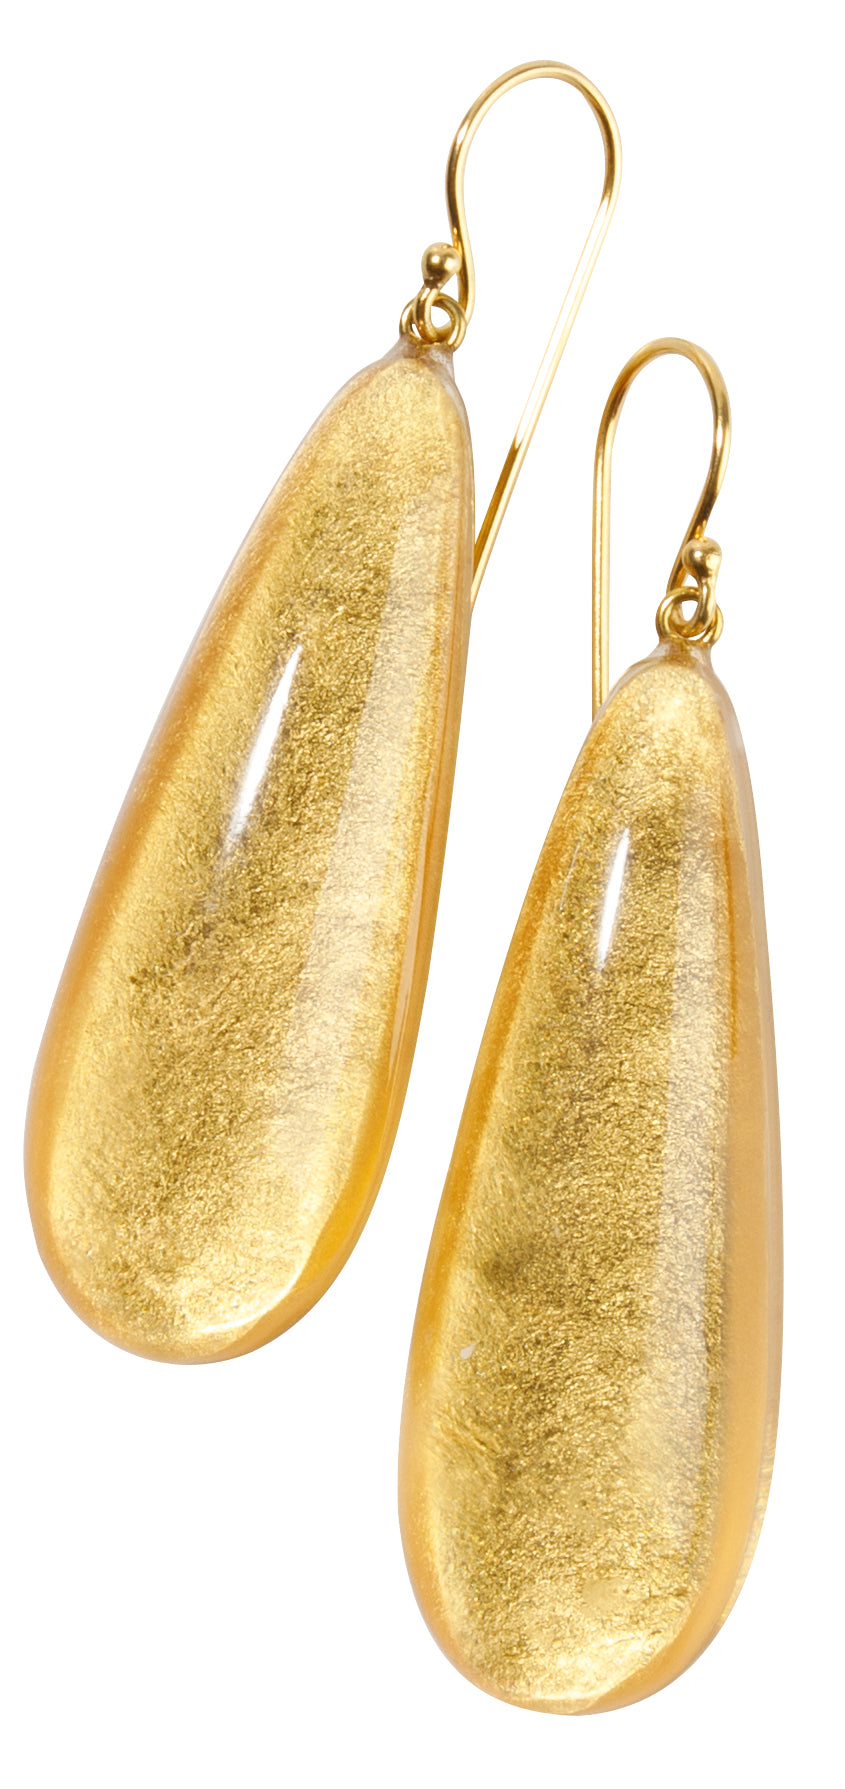 Zsiska Precious Gold Leaf Drop Earrings